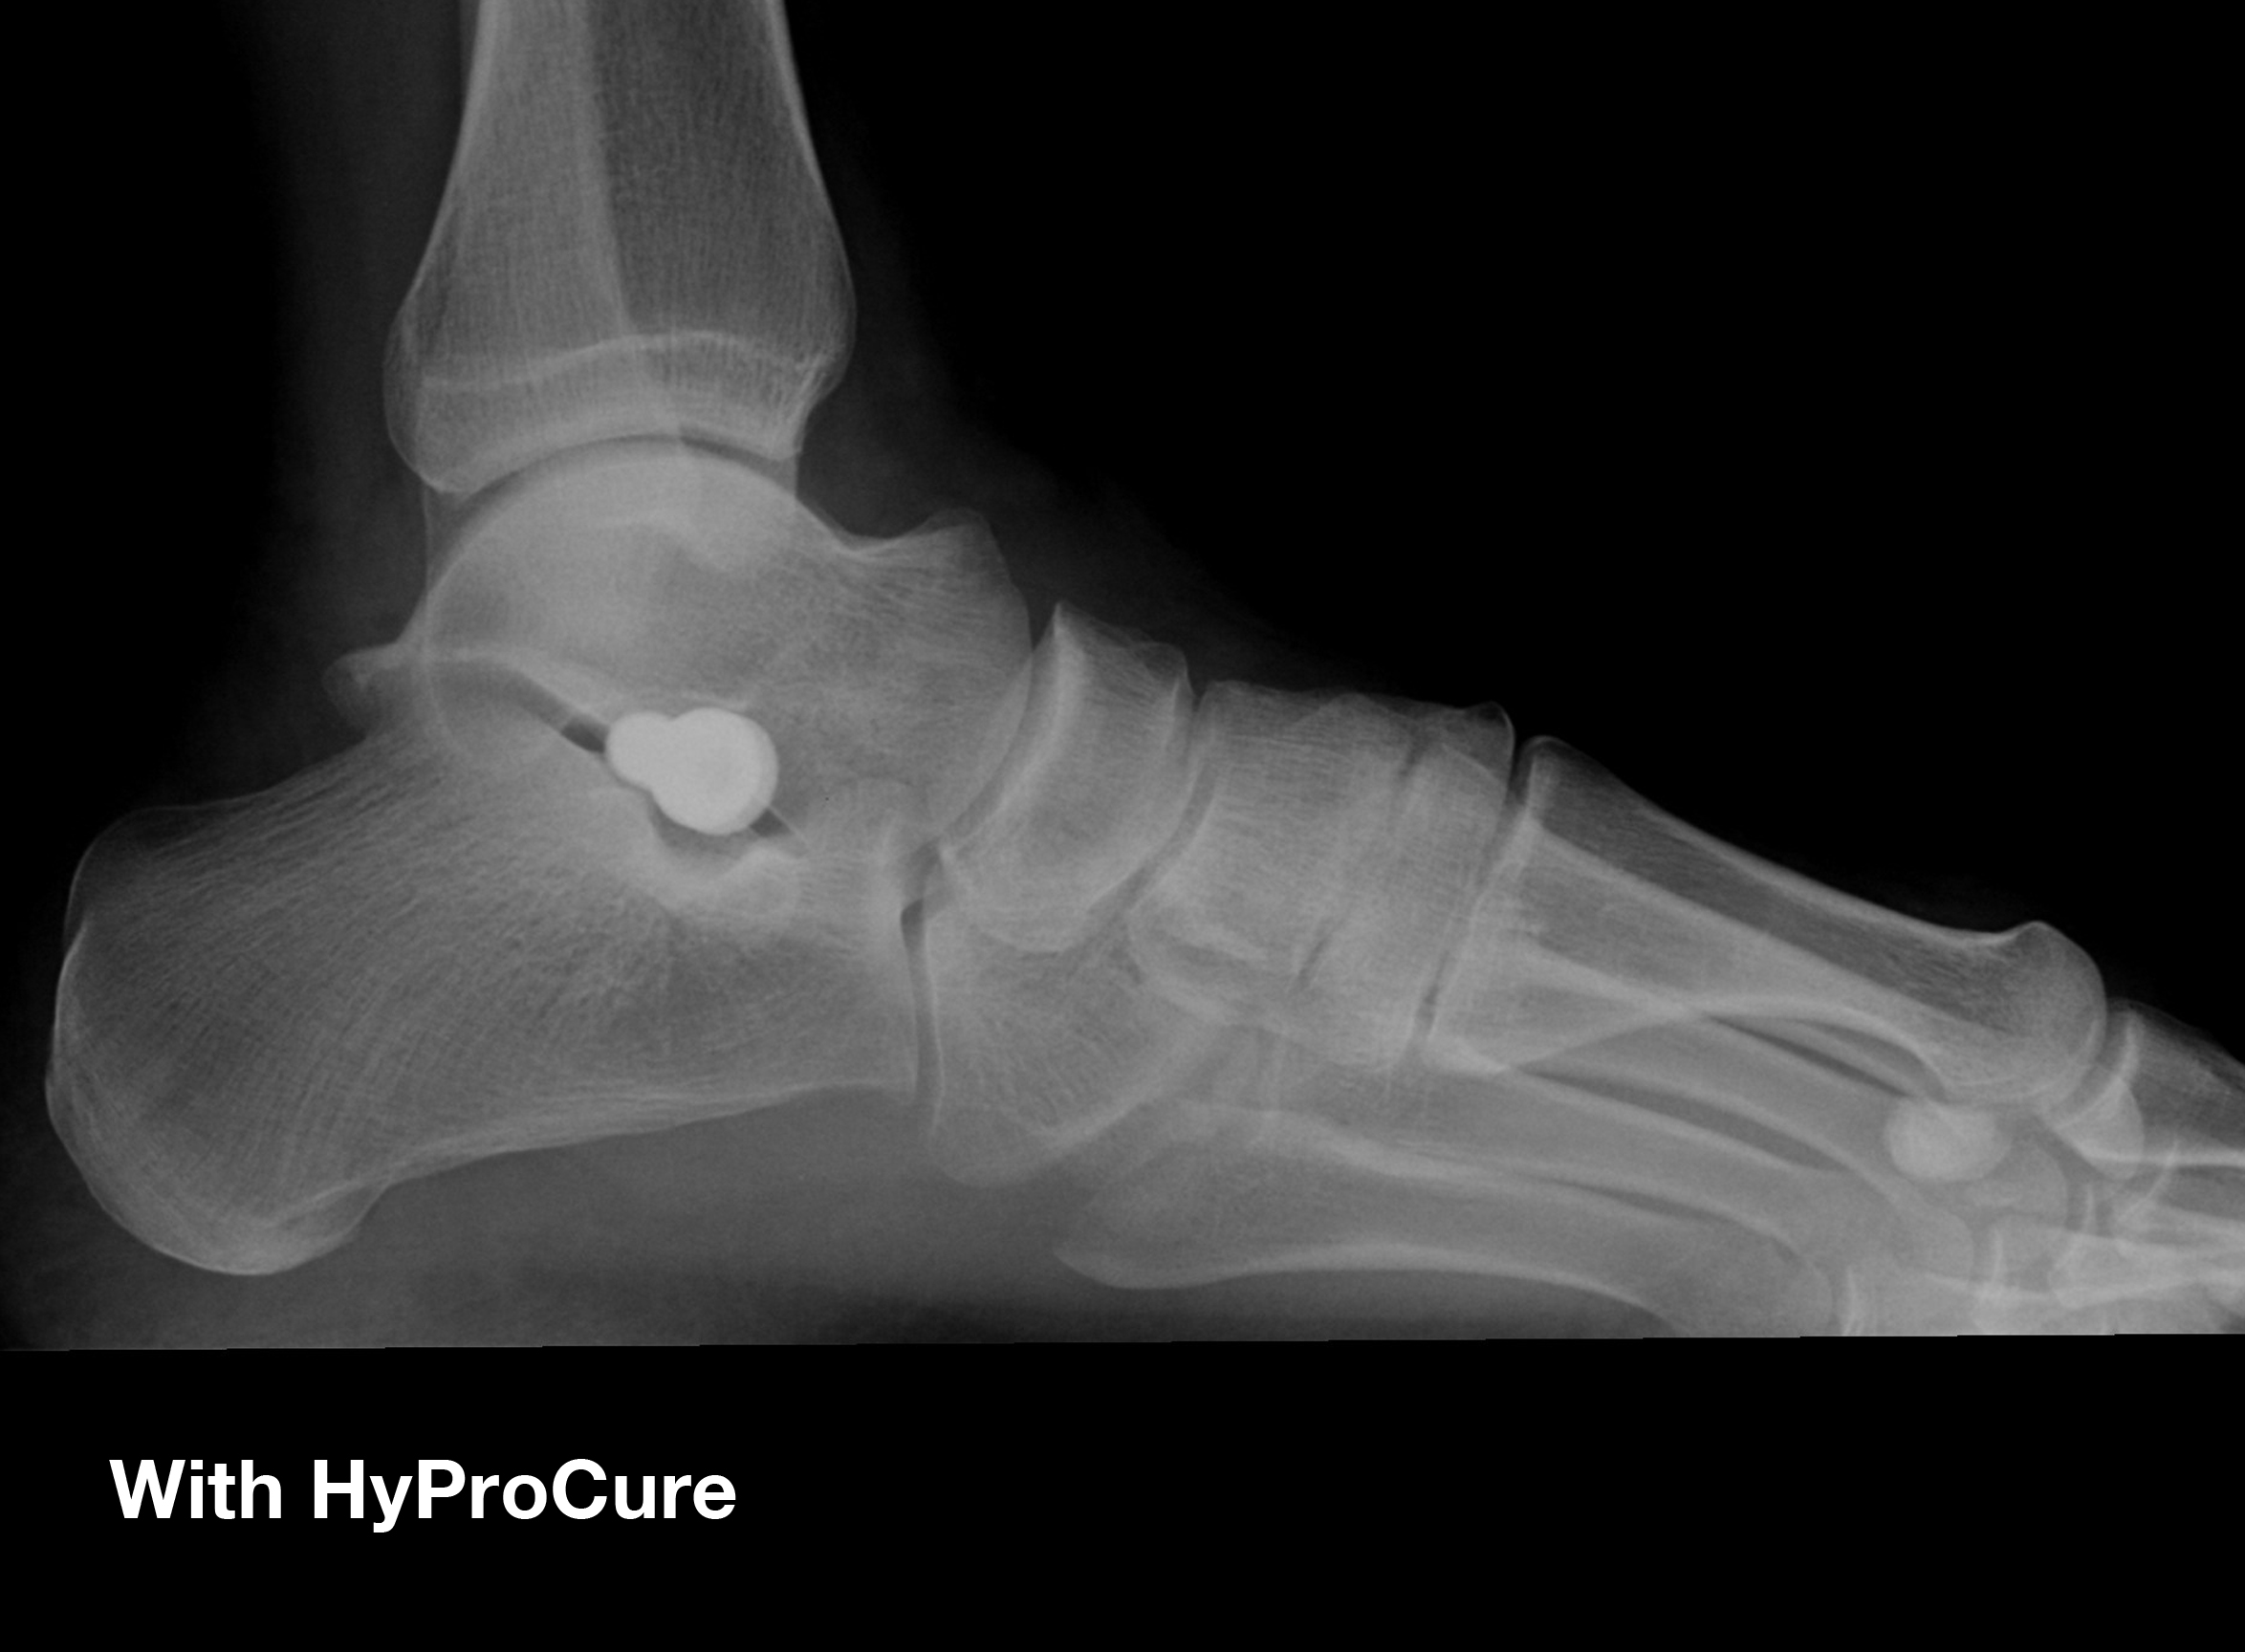 HyProCure® is the perfect solution when arch supports are not enough, and reconstruction surgery is too aggressive.